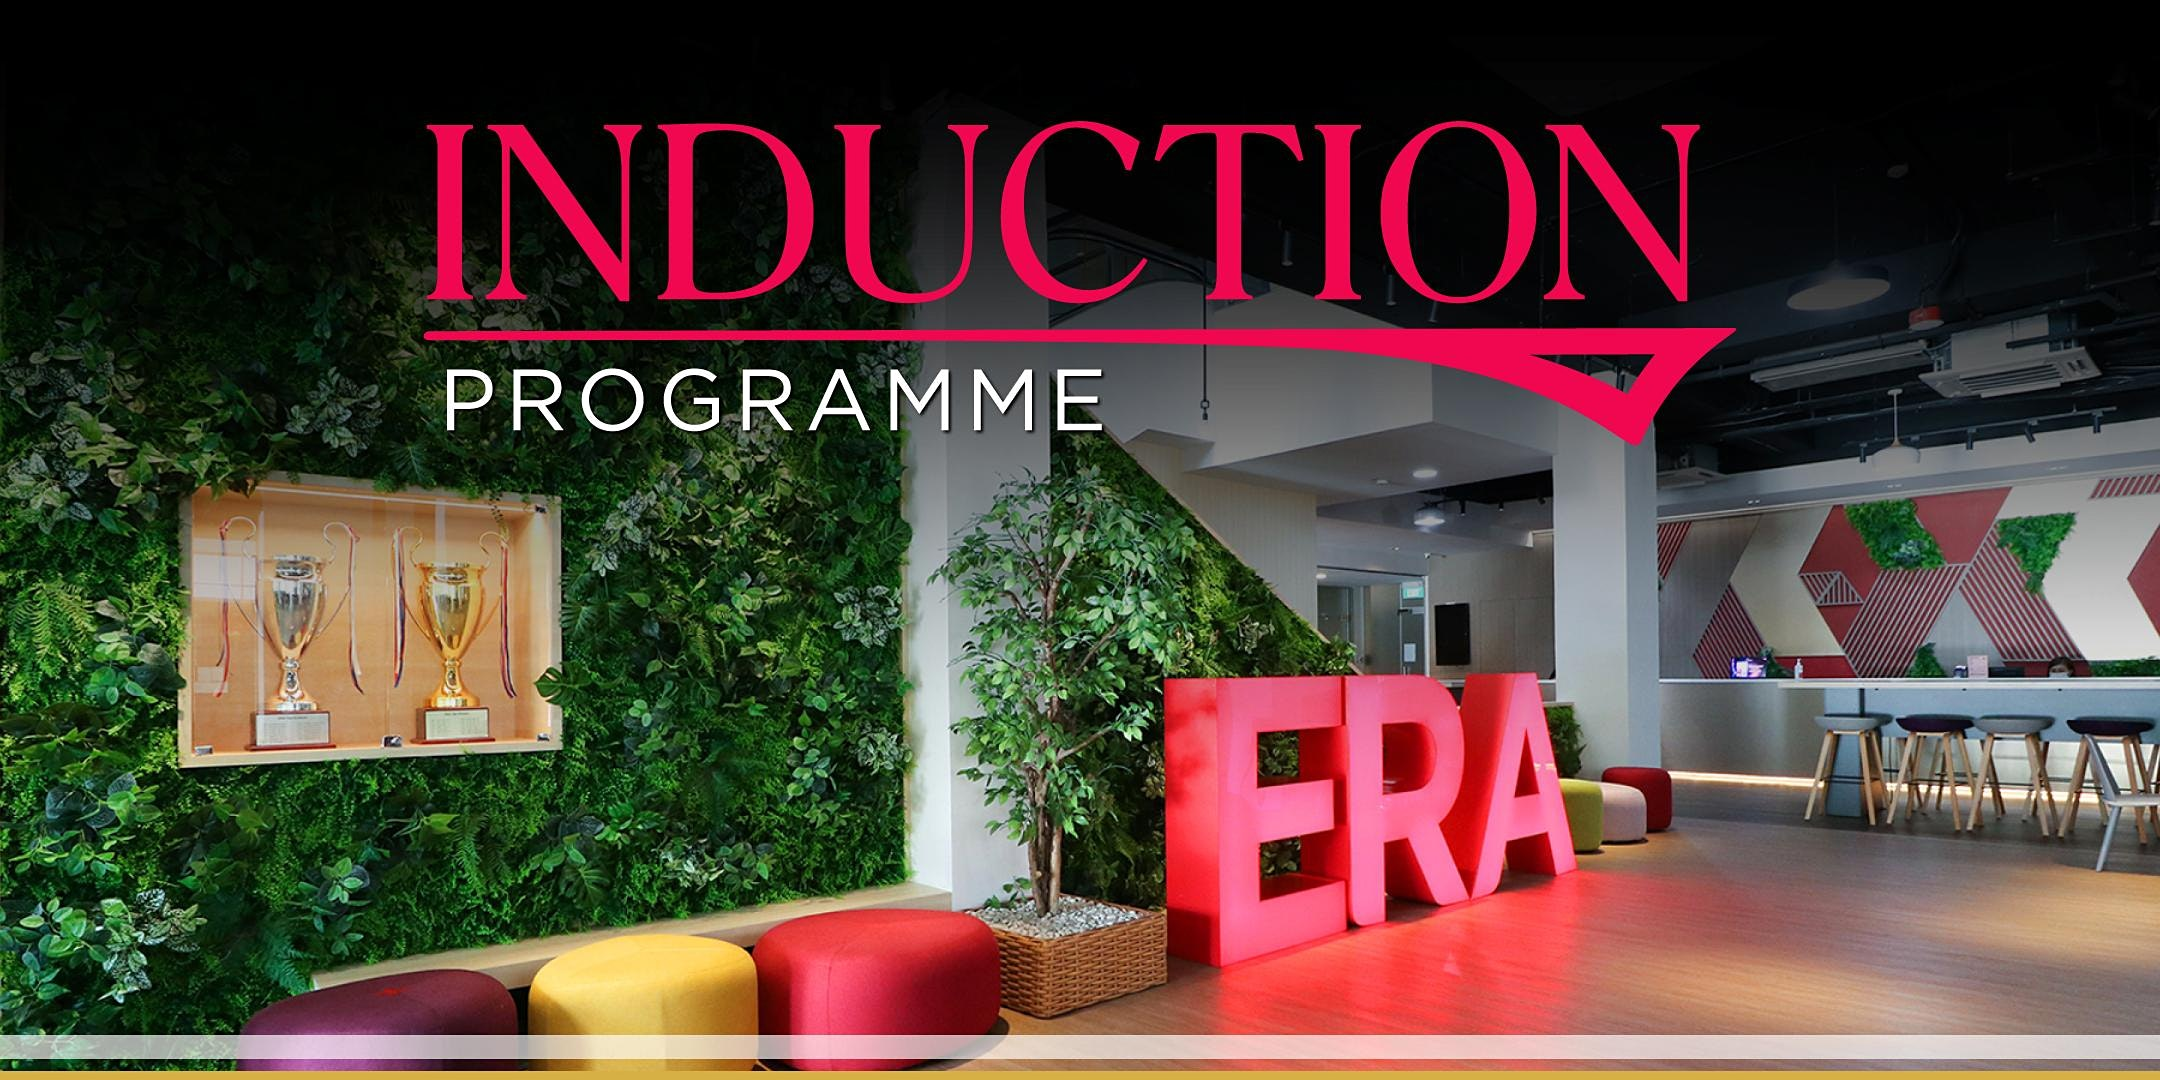 Induction Programme